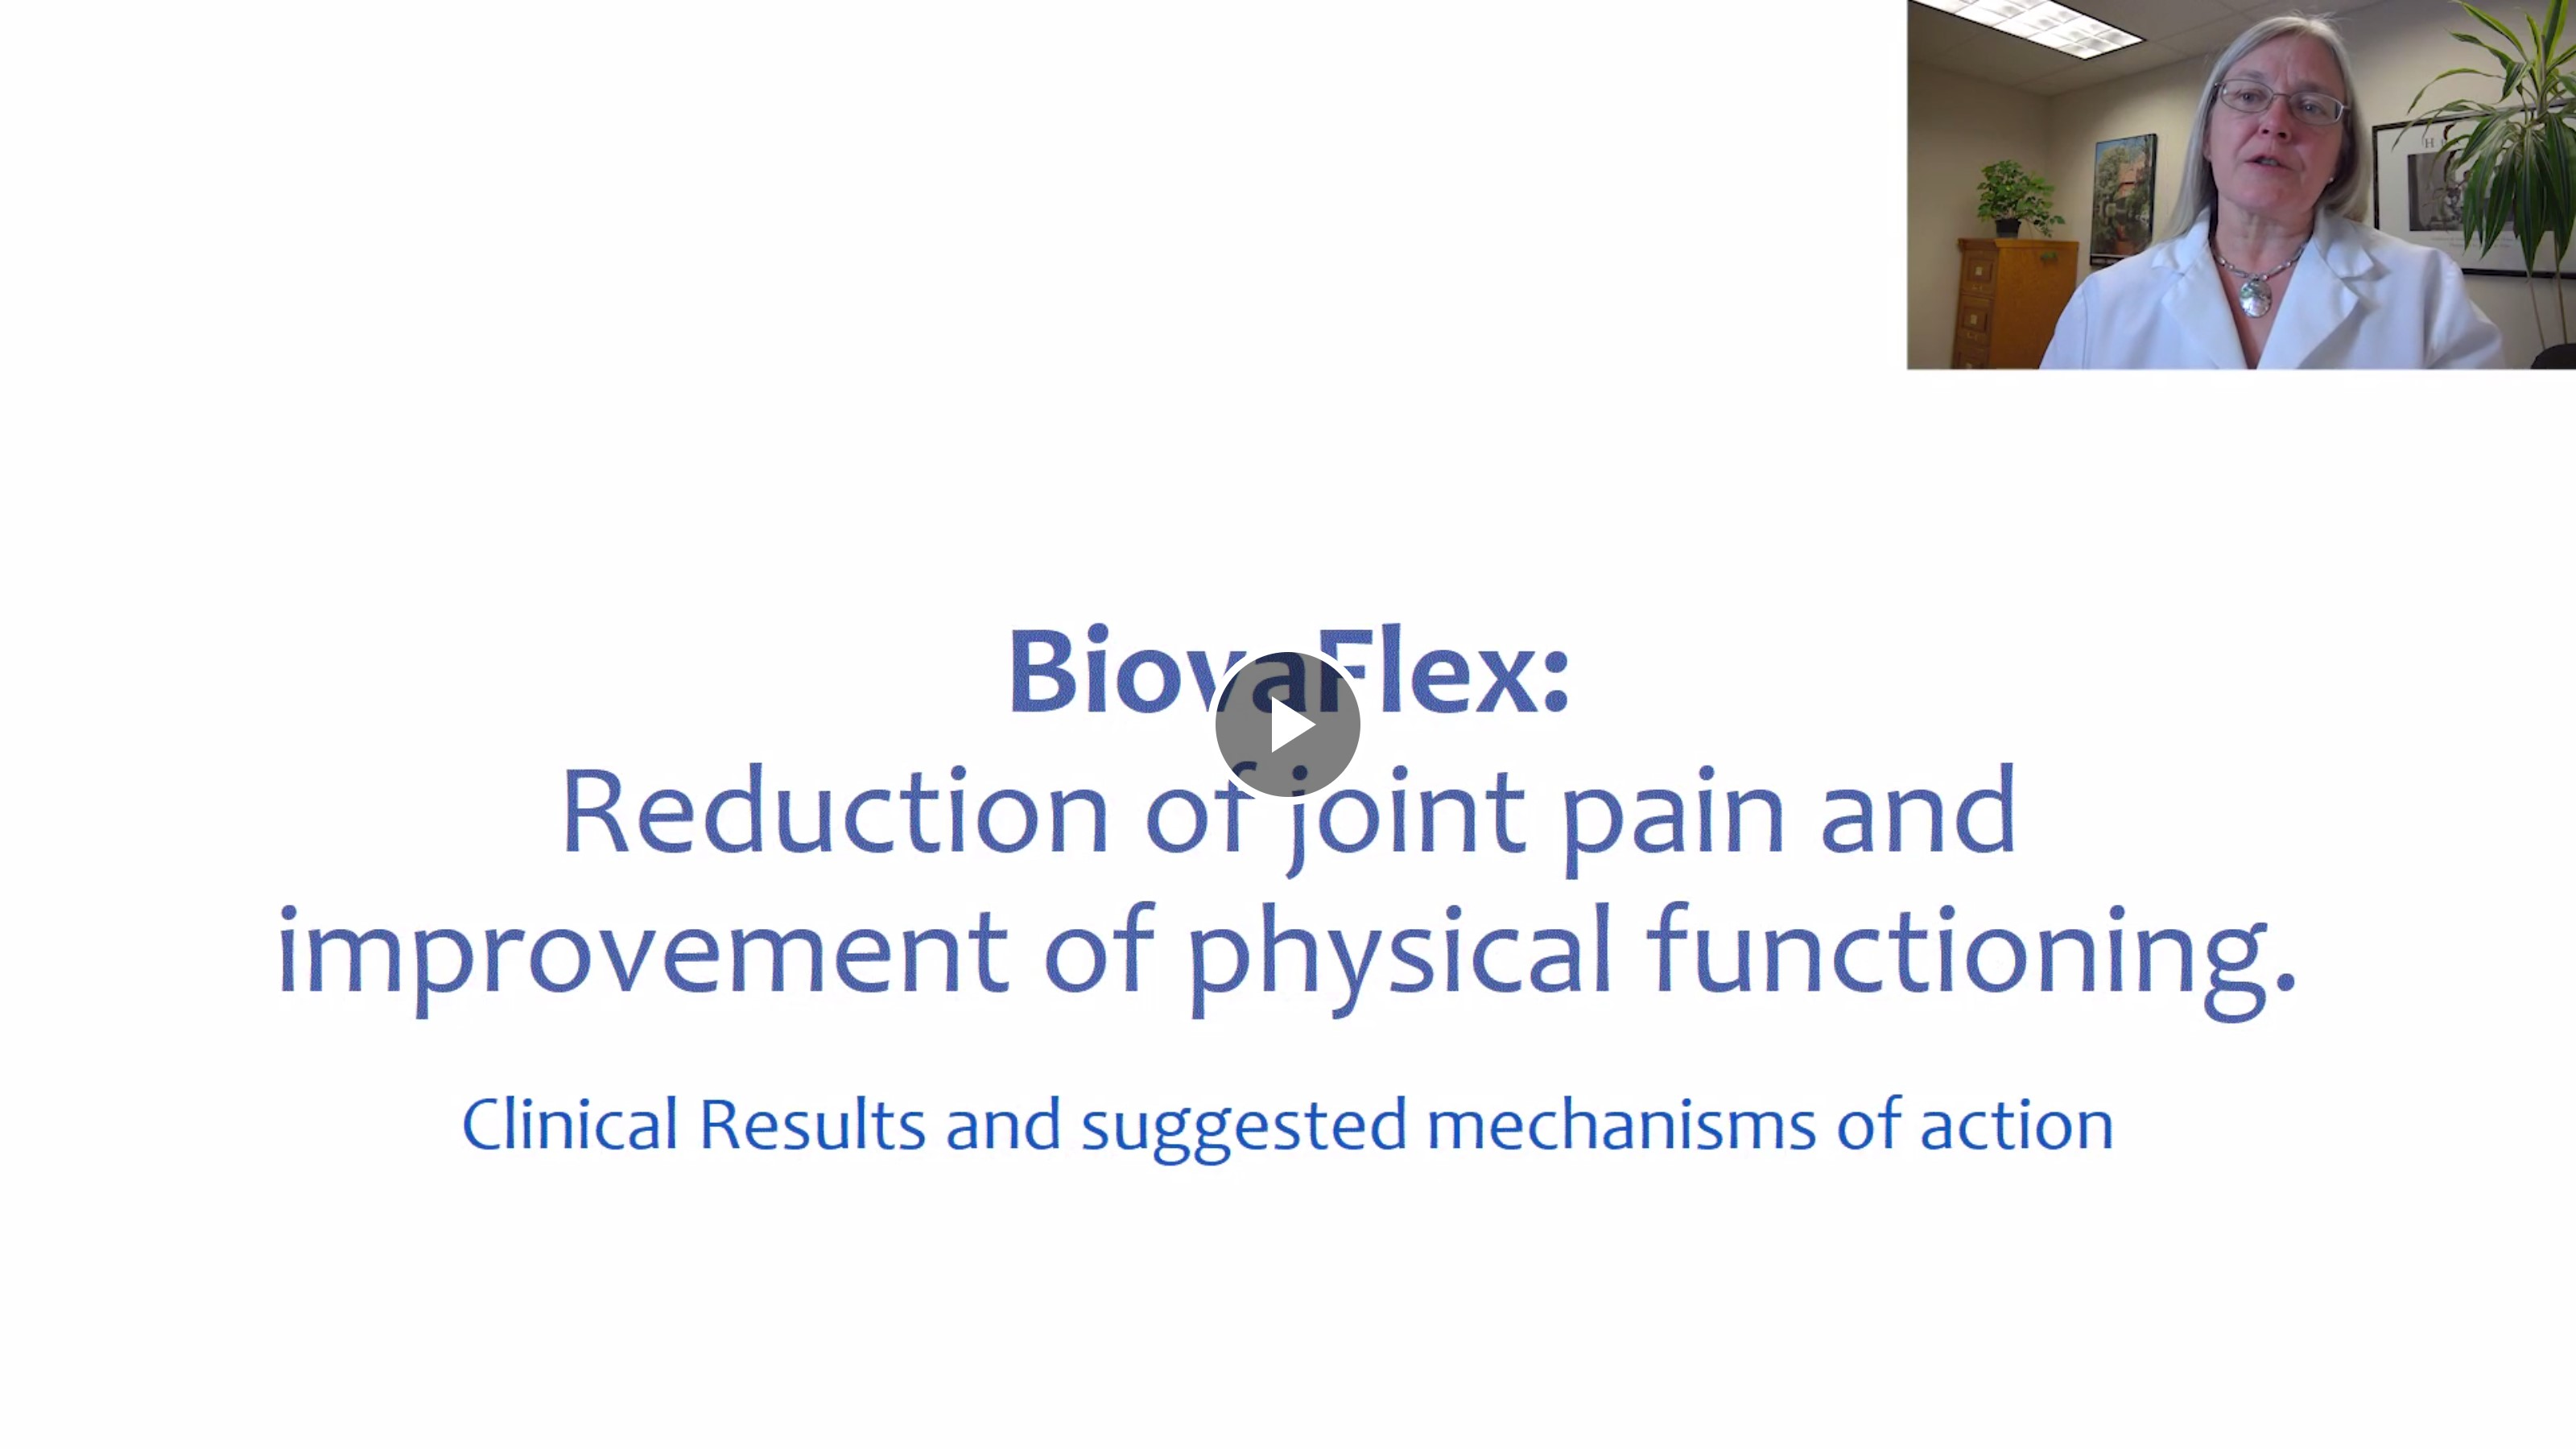 View a video summary of the BiovaFlex study: